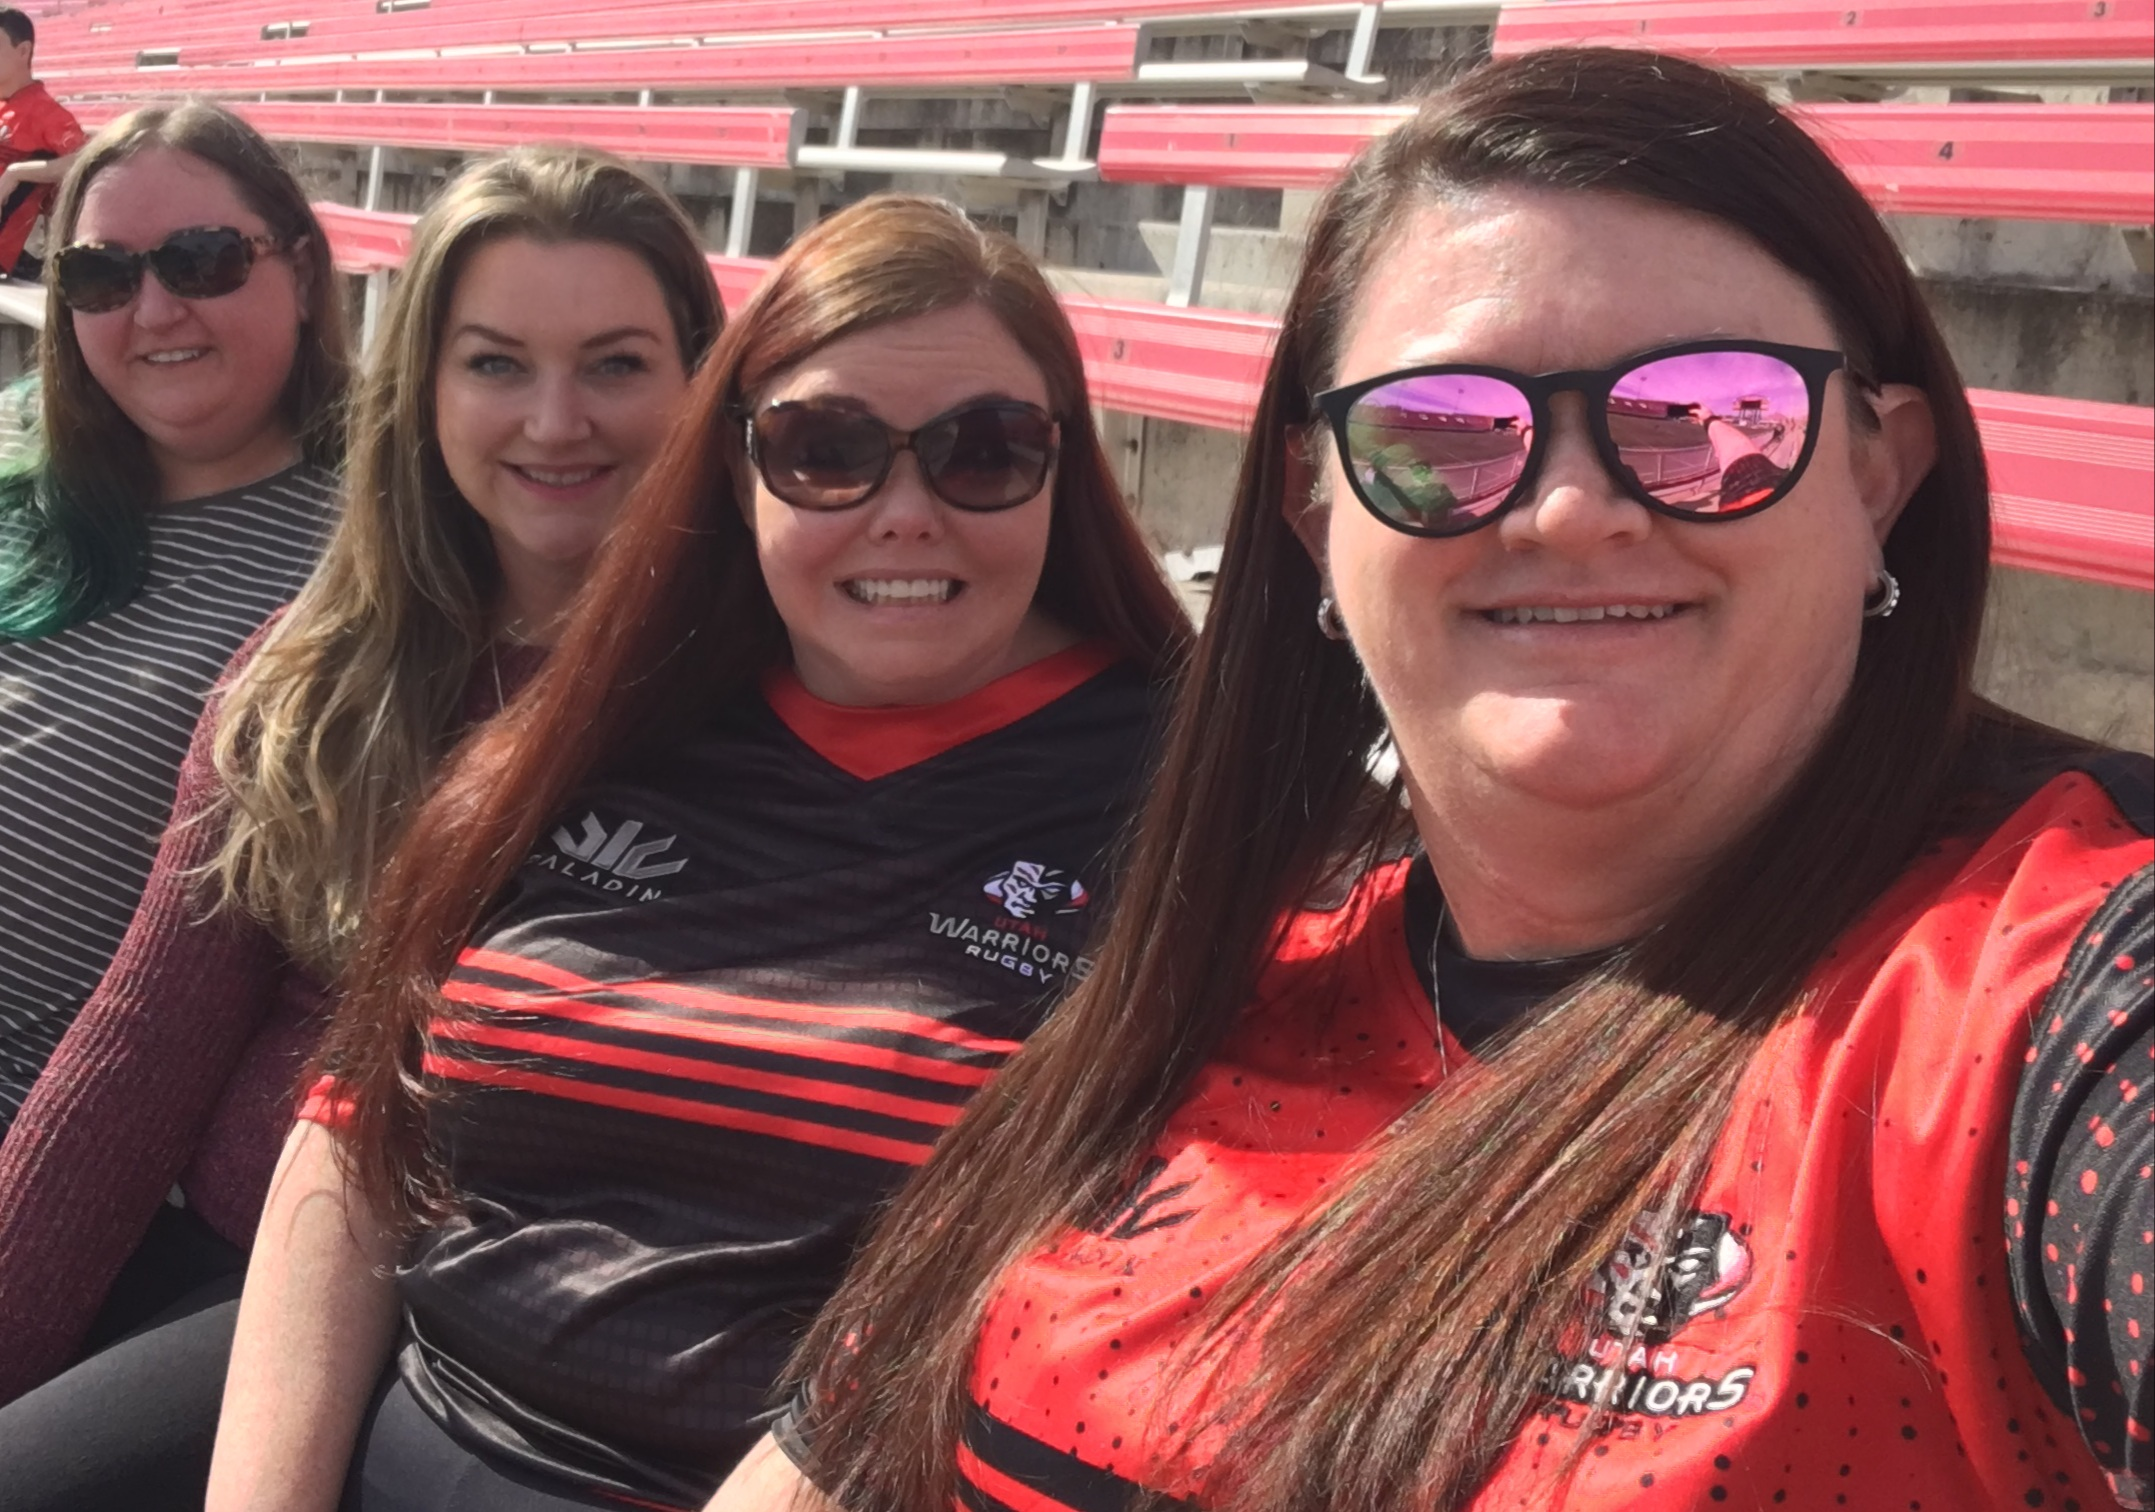 Season ticket holder op-ed: Julie Winder